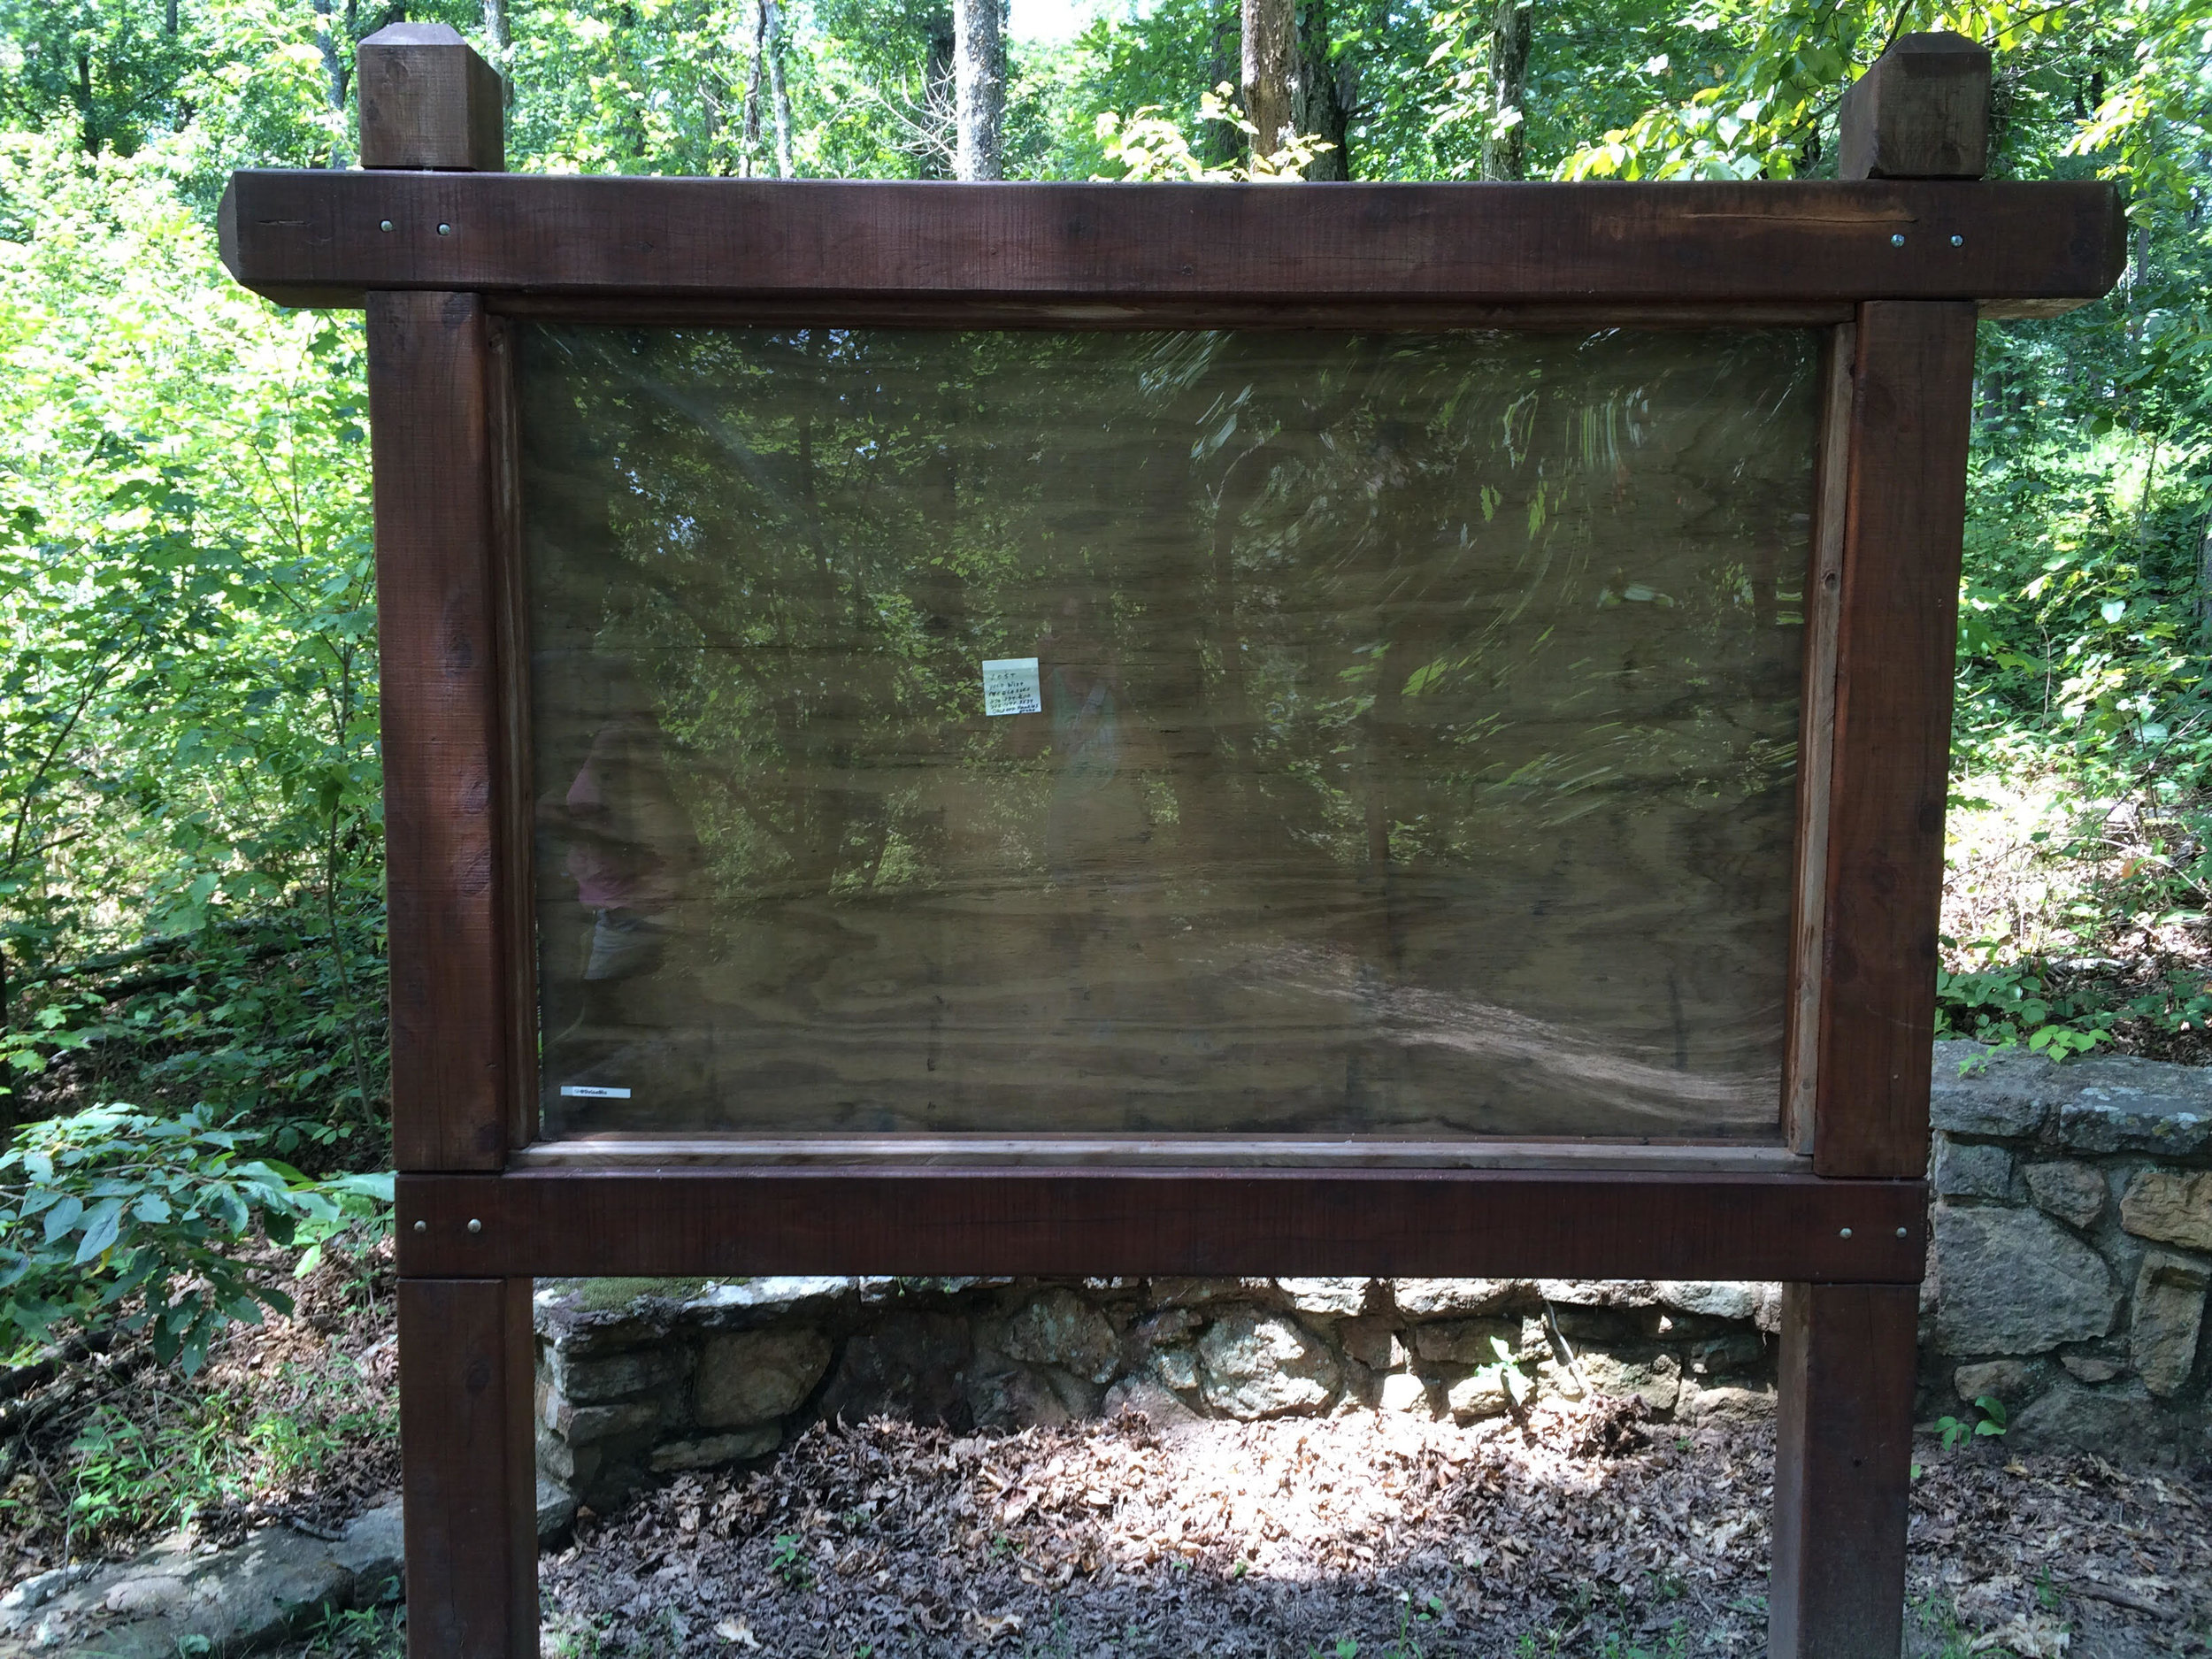 This information board at the trailhead represents the helpfulness of the Arkansas people.